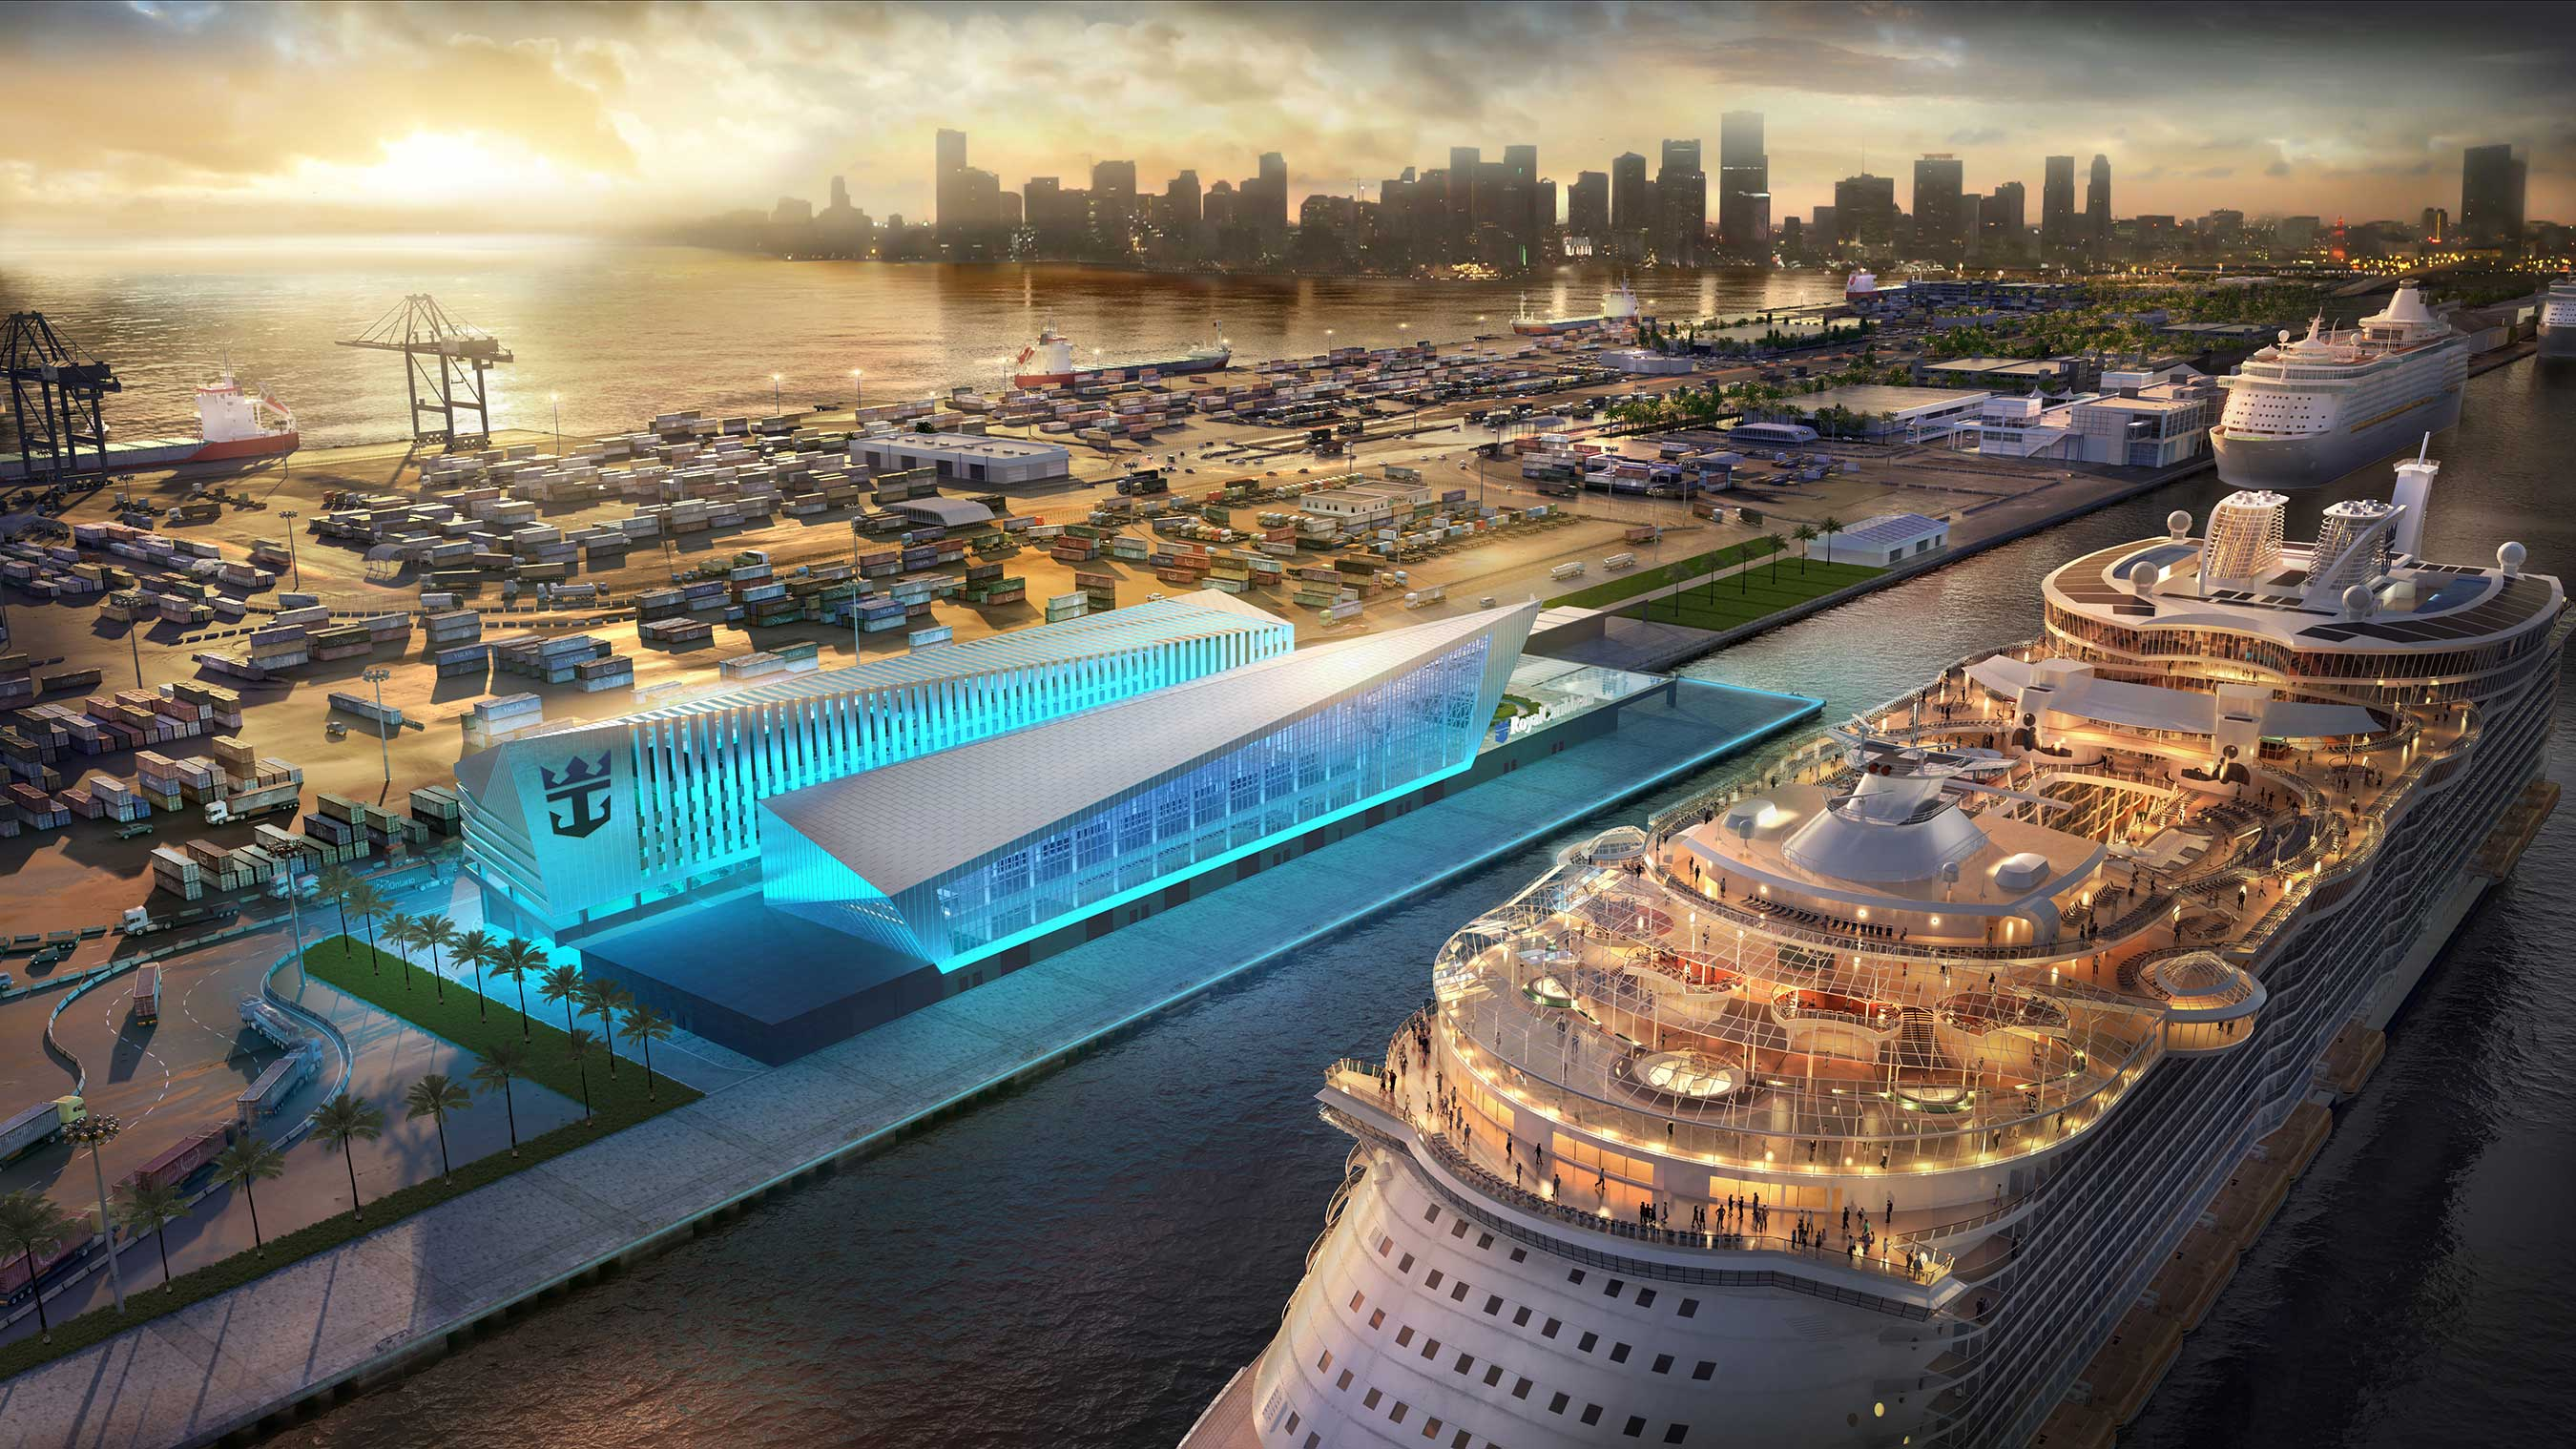 Royal Caribbean Cruises Ltd. (RCL), in agreement with Miami-Dade County, will build and operate a new, world-class terminal at PortMiami. The iconic building is scheduled for late 2018.